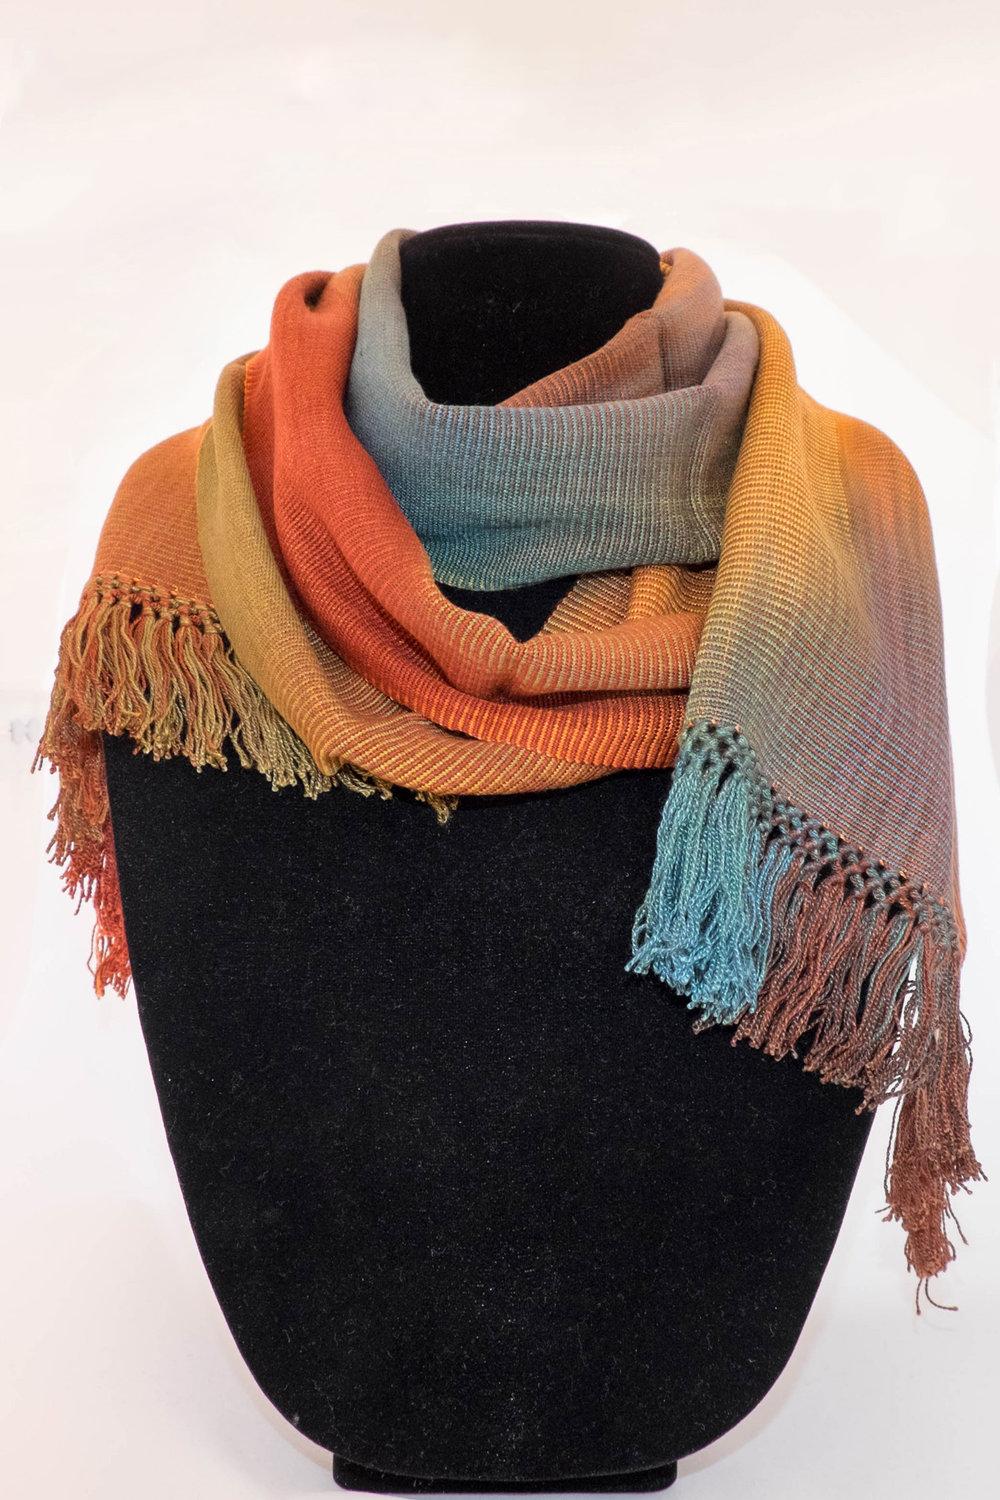 AUtumn Delight Bamboo Scarf    $39.00